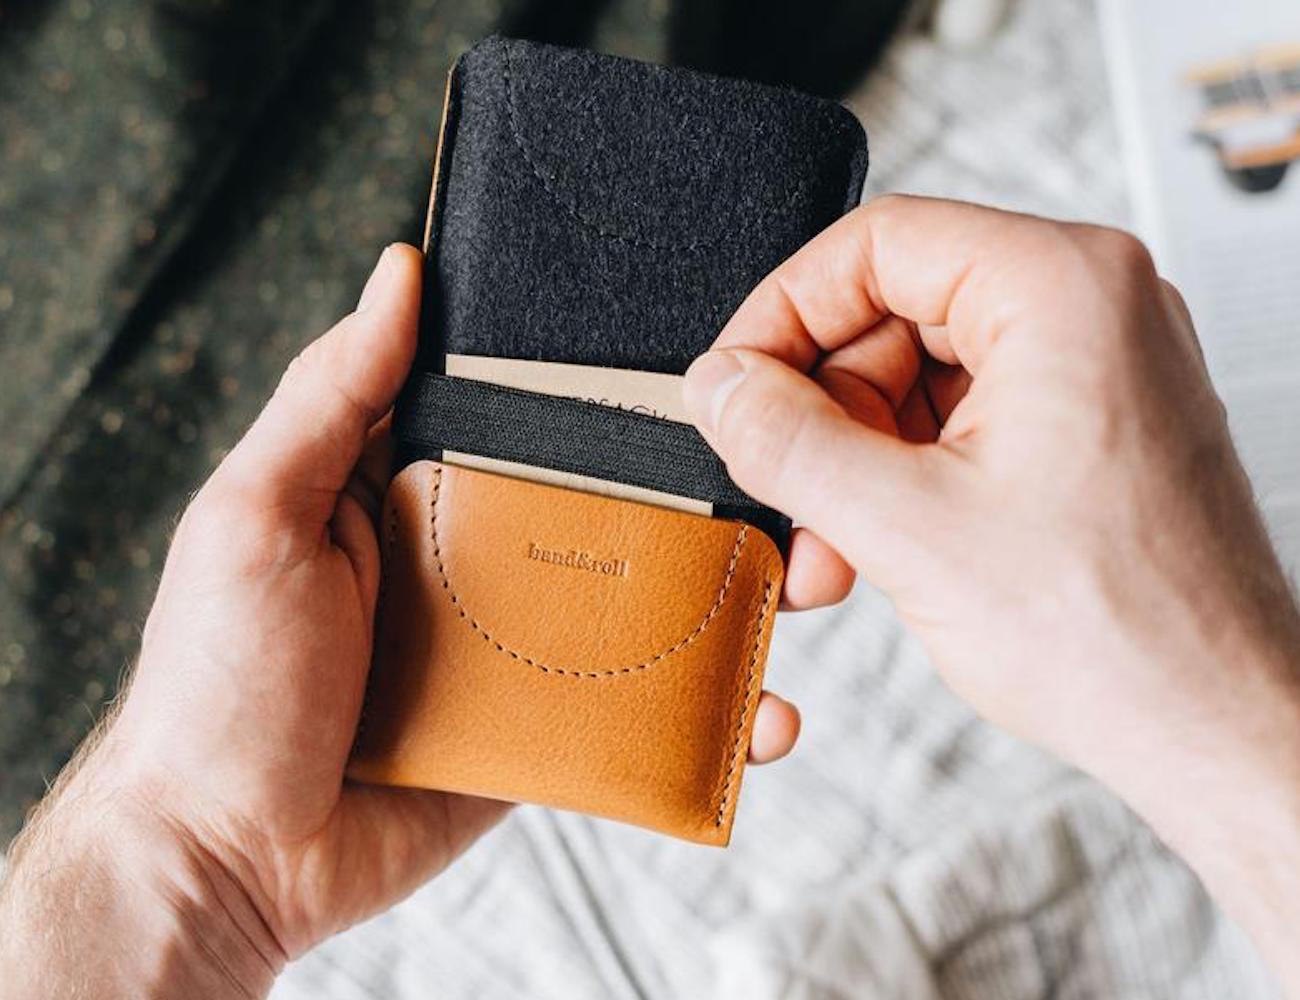 band&roll Kangaroo Leather Smartphone Wallet Case doesn't sacrifice style for protection